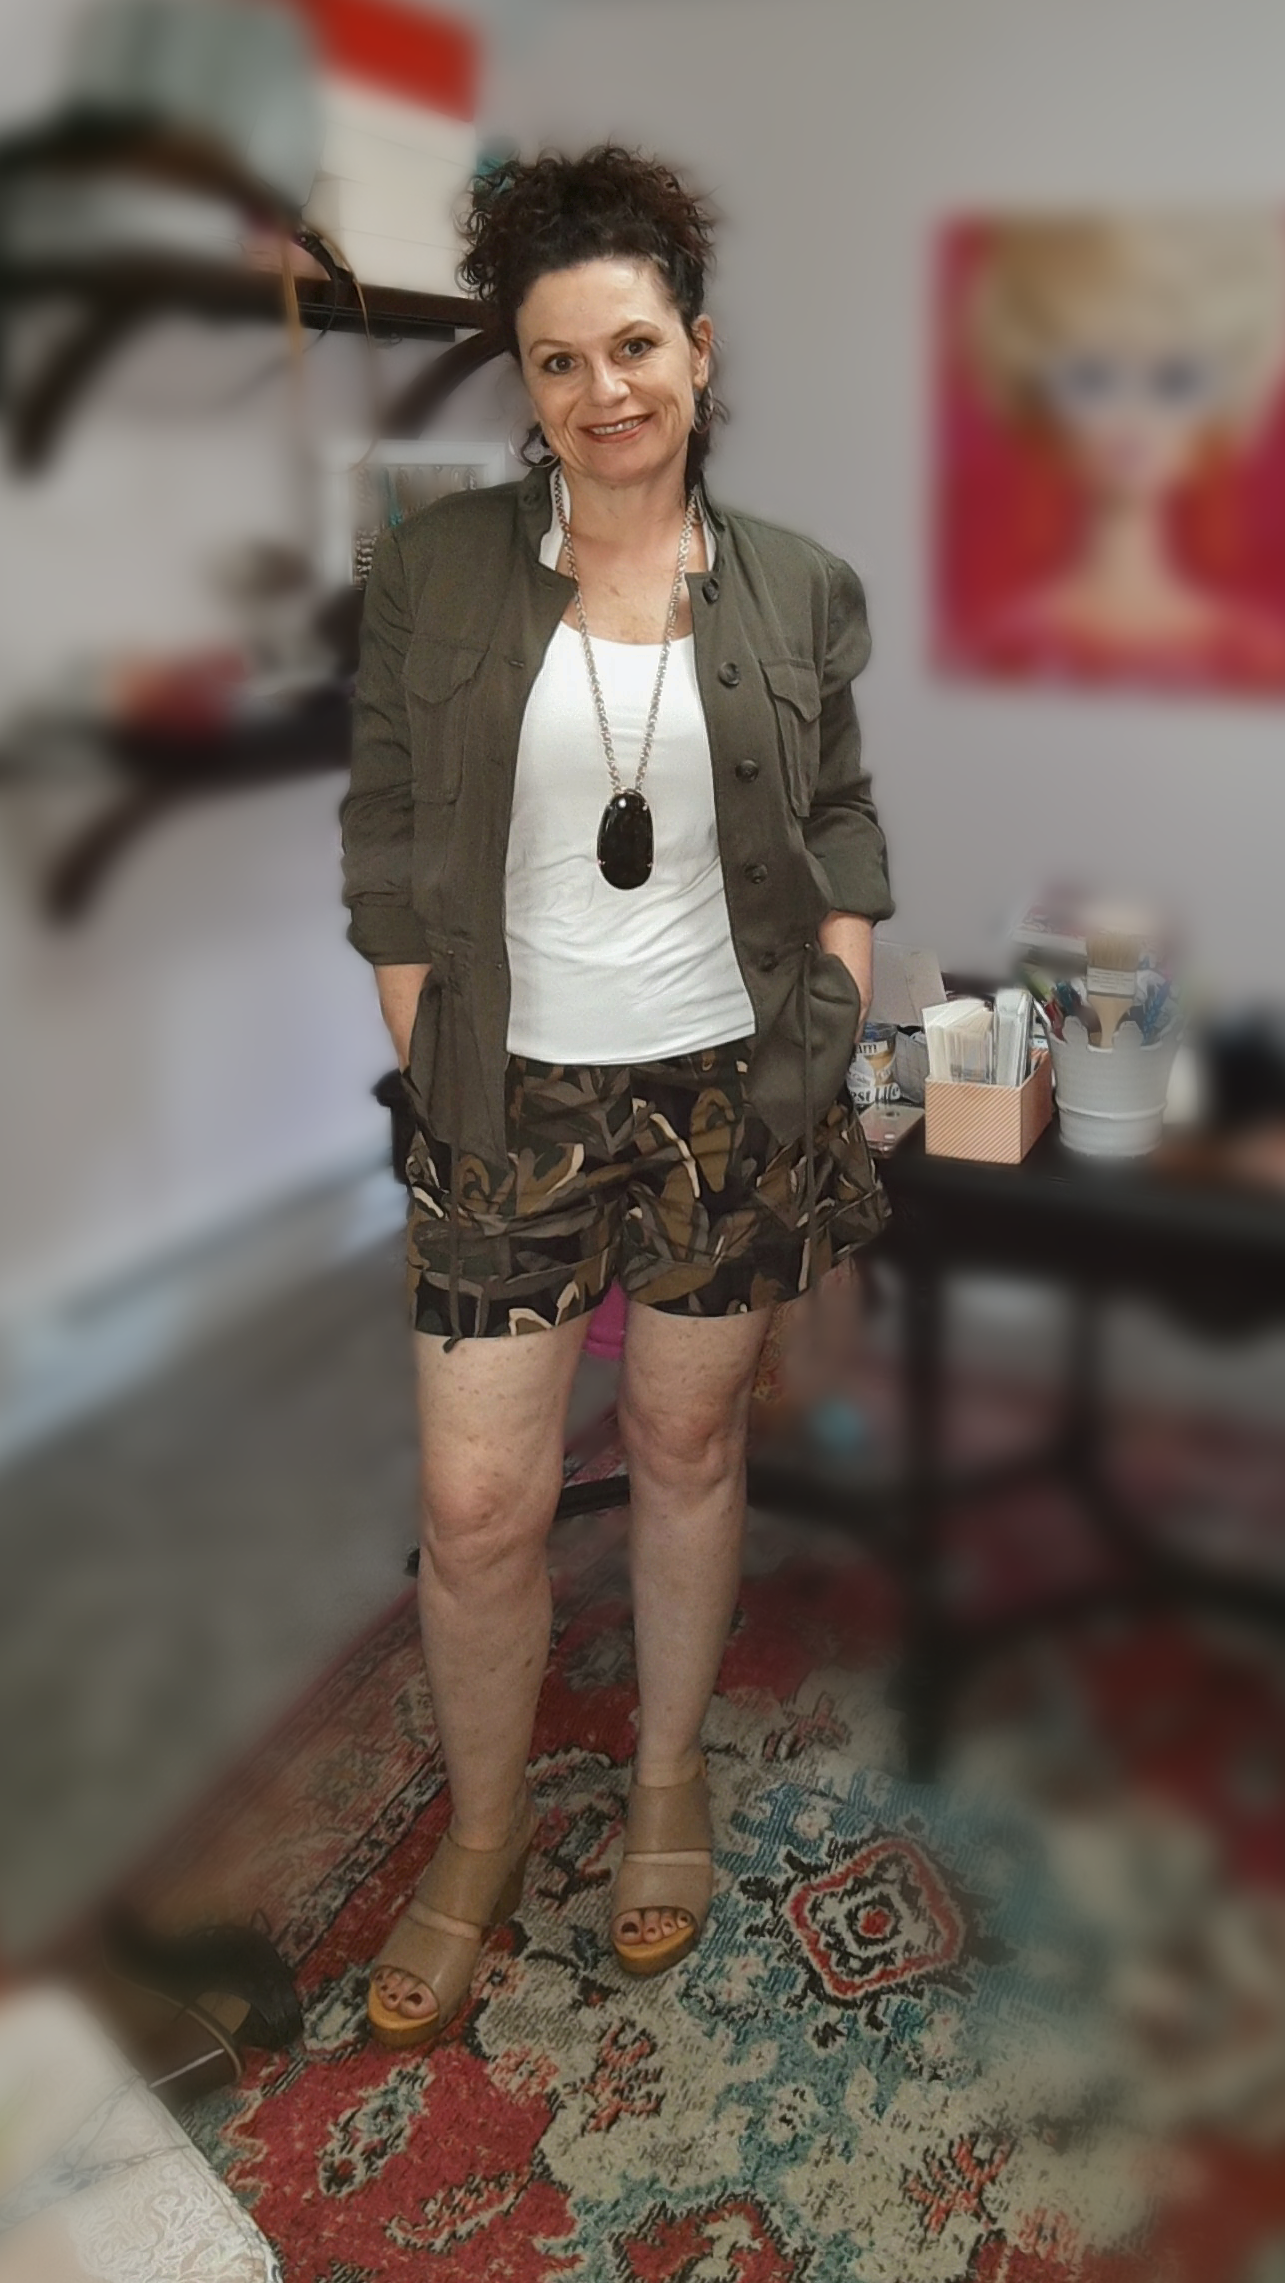 Casual dressy - I have the shorts here with a soft utility jacket, a cream sleeveless top, and my chunky necklace.  I added the blush shoes for a different look.  If I wanted to change the look again I would switch the necklace for a short multi-strand pearl necklace.  If I wanted to change it yet again,  I would swap the shoes for my black strappy sandals.  Options!!